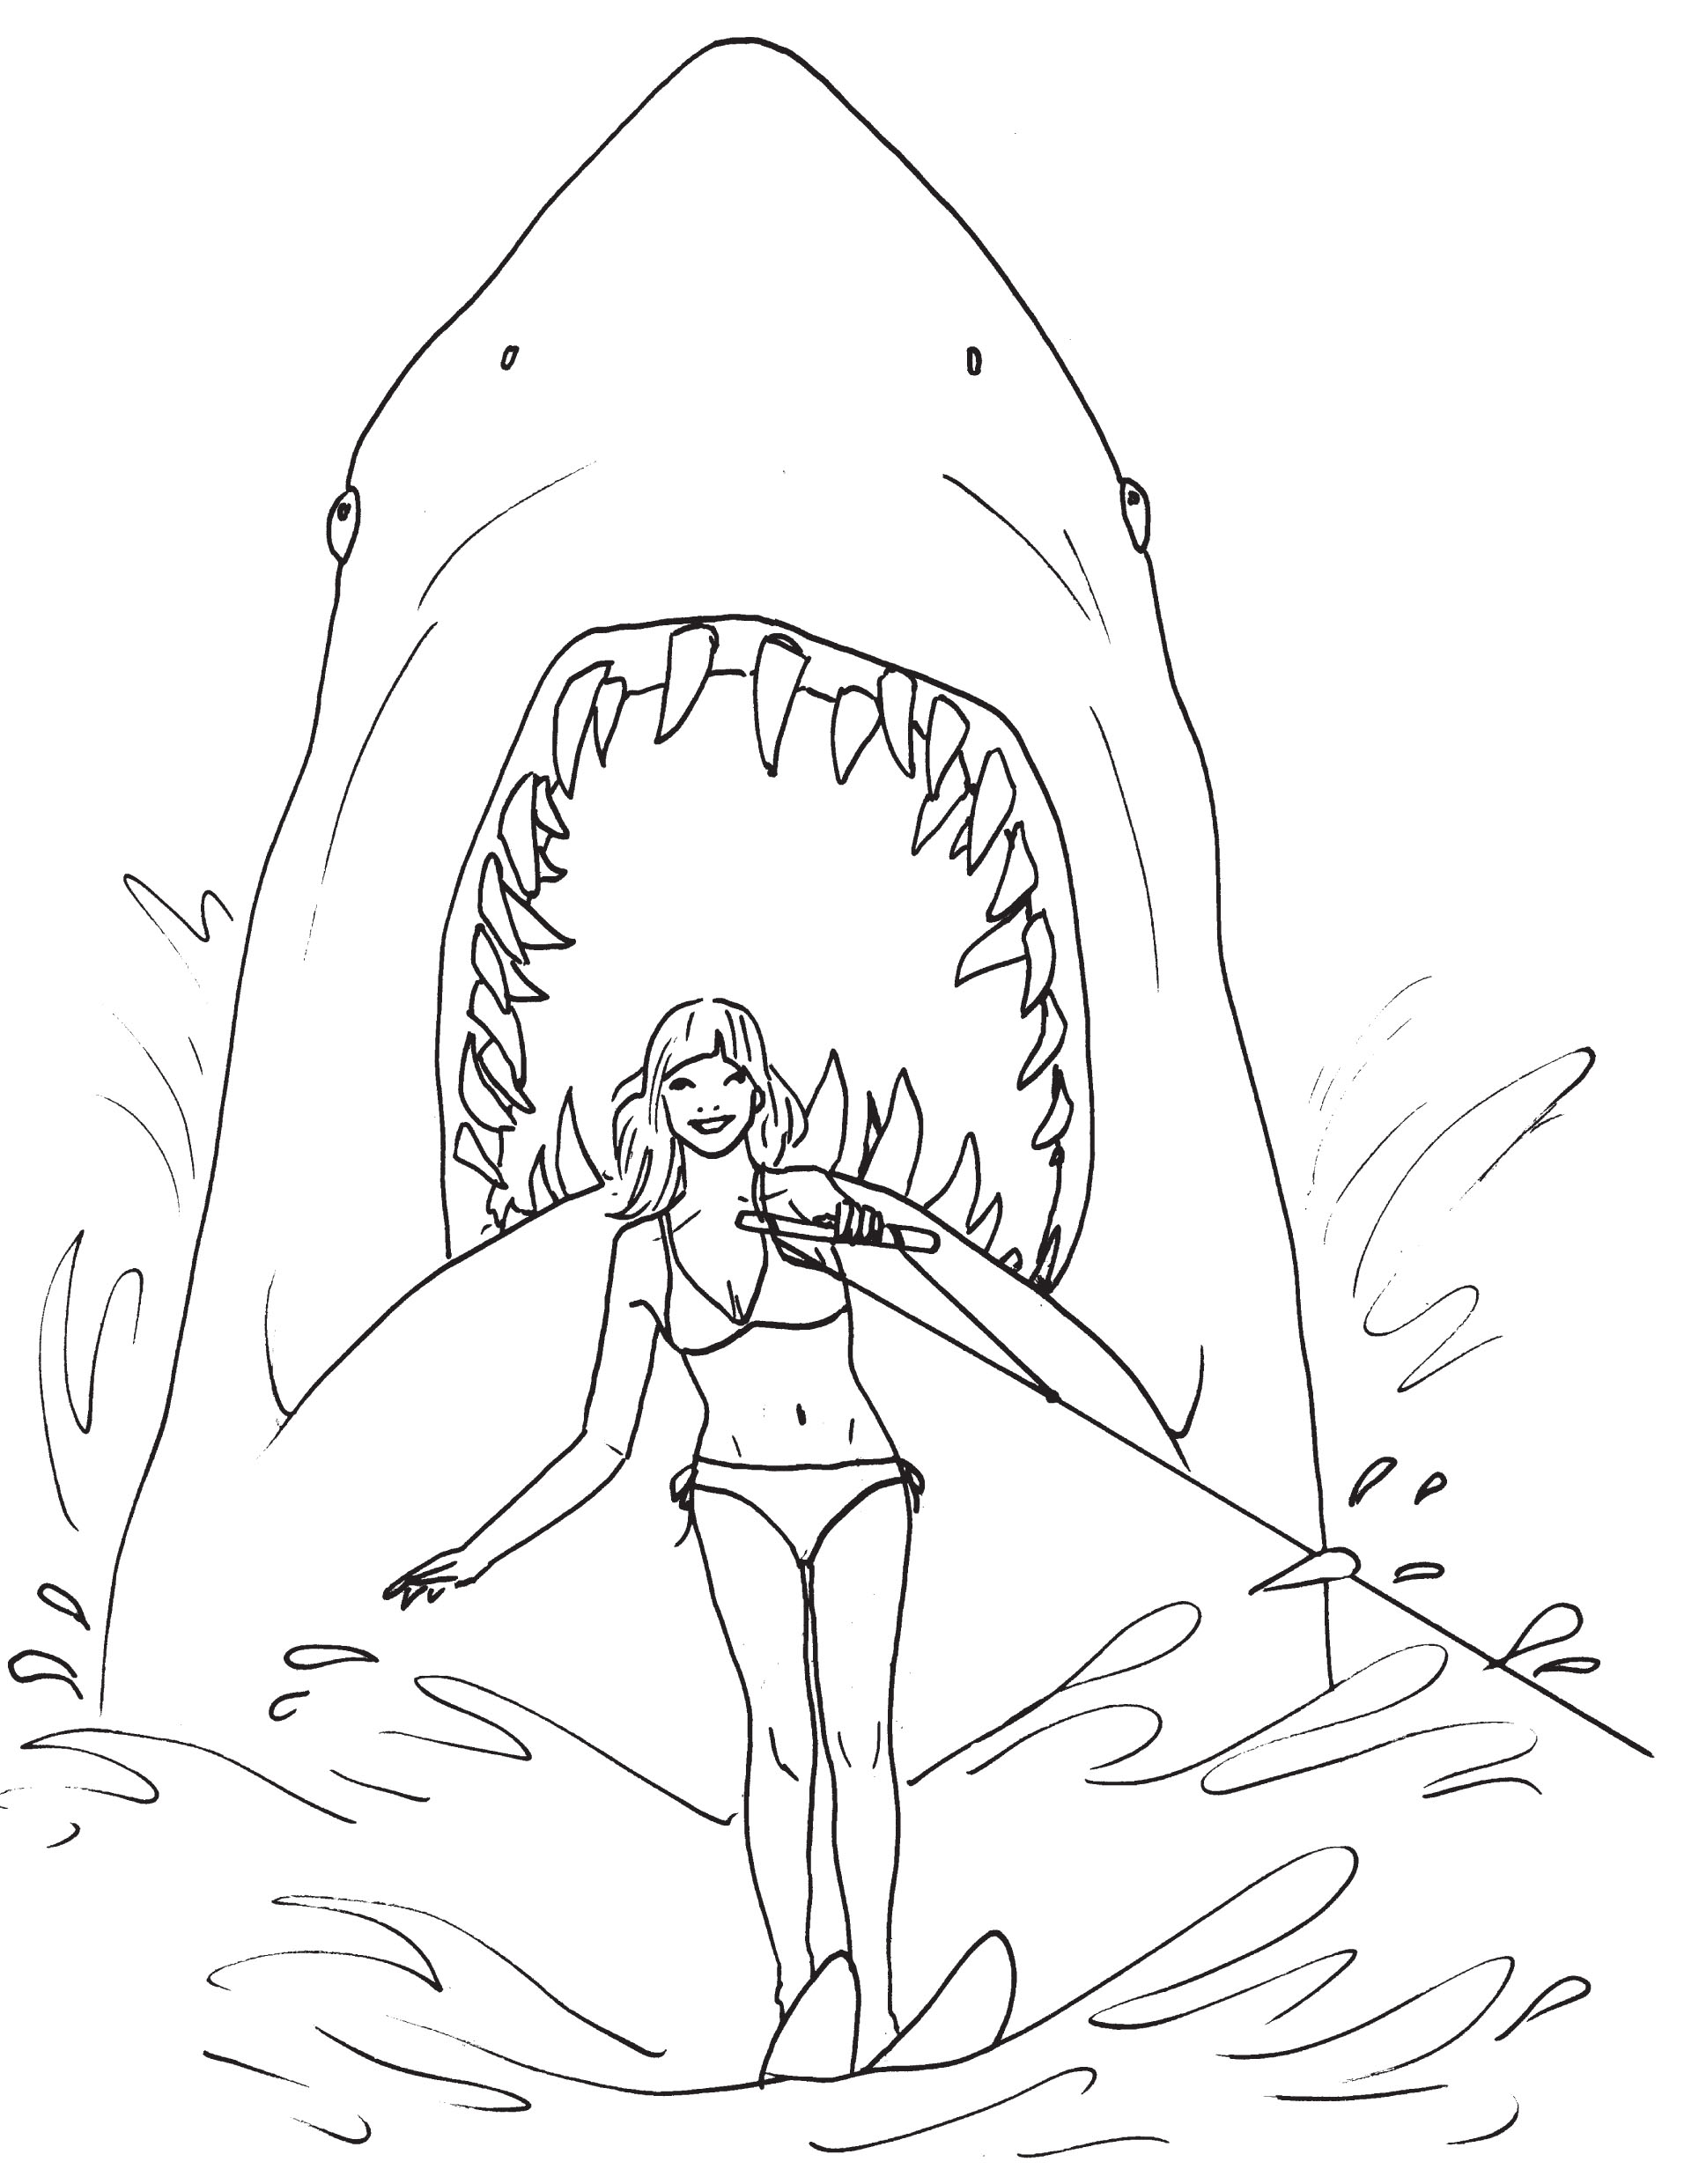 Great white shark coloring pages to download and print for for Coloring pages shark